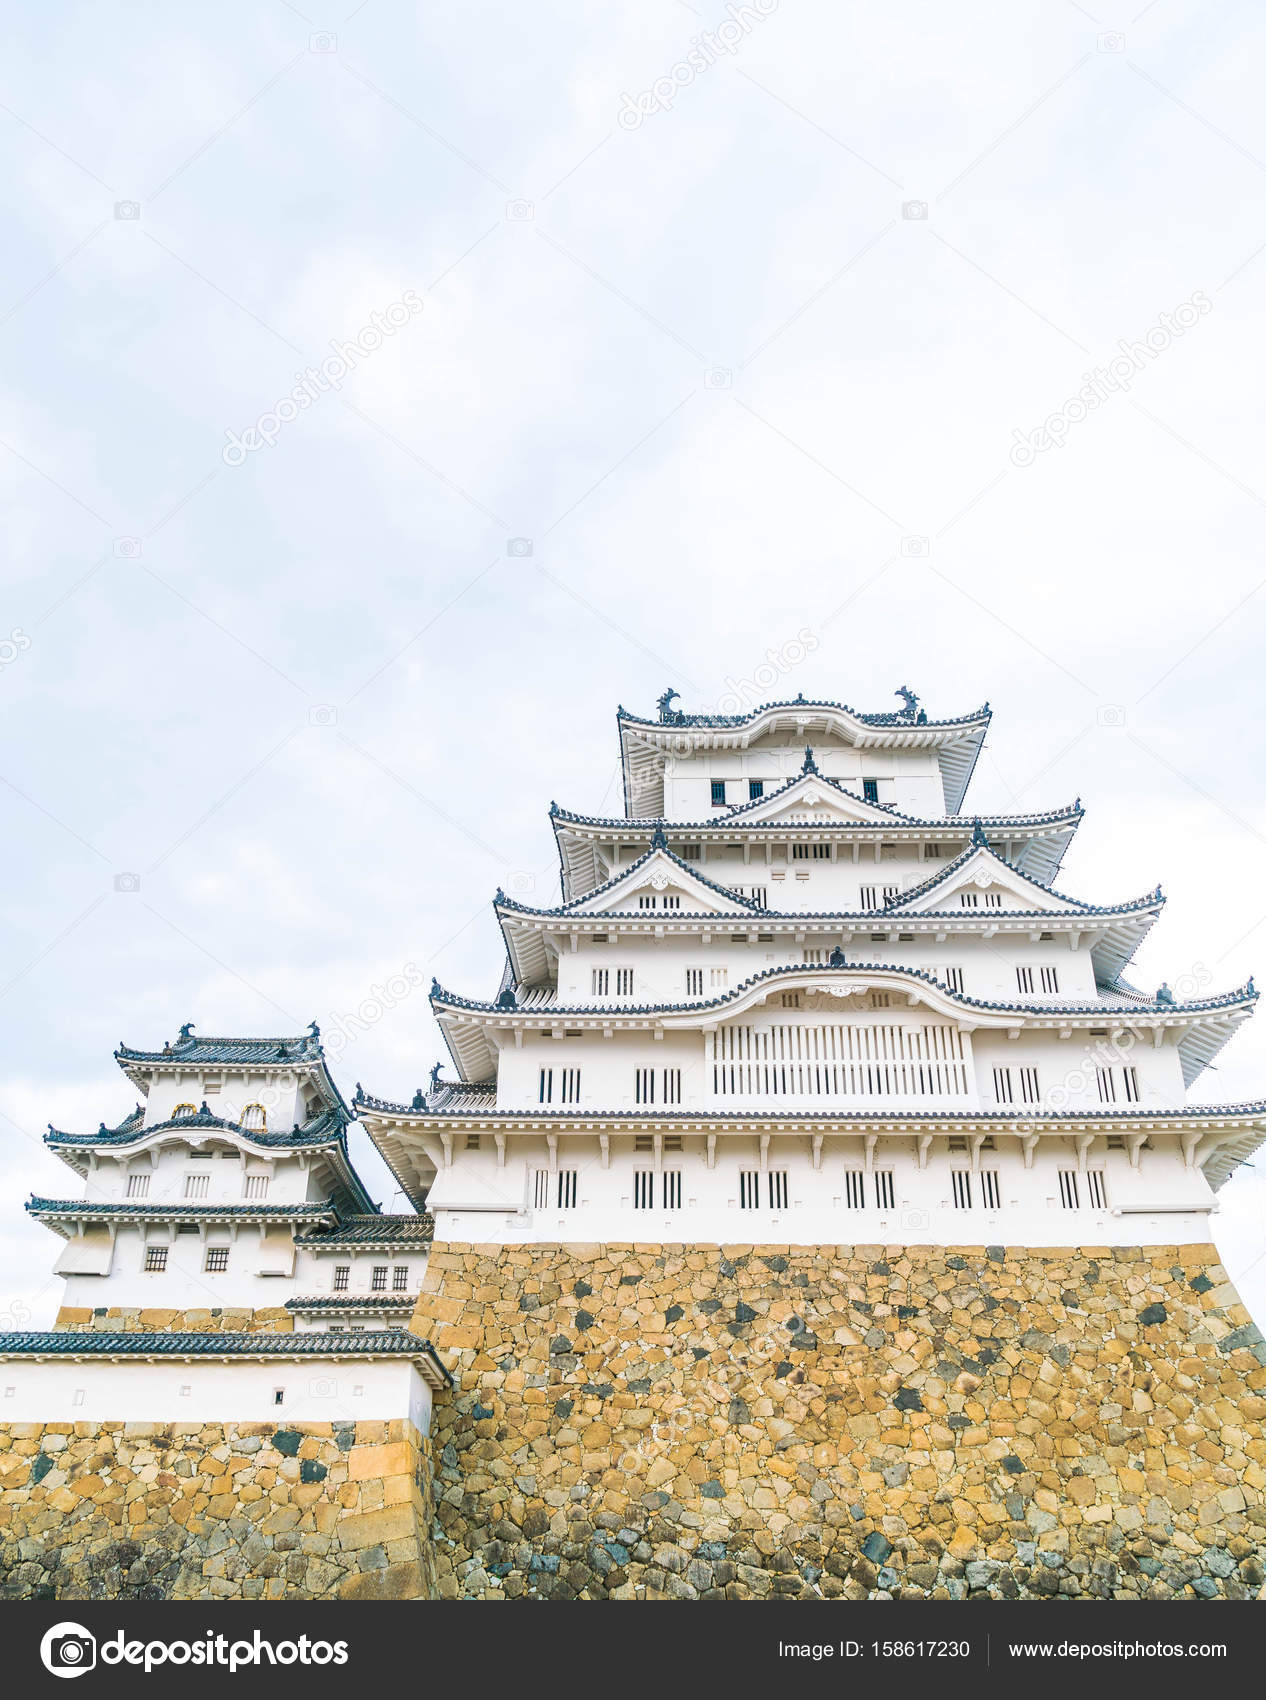 Himeji castle in hyogo prefecture japan unesco world heritage beautiful architecture himeji castle in hyogo prefecture japan unesco world heritage photo by topntp publicscrutiny Choice Image